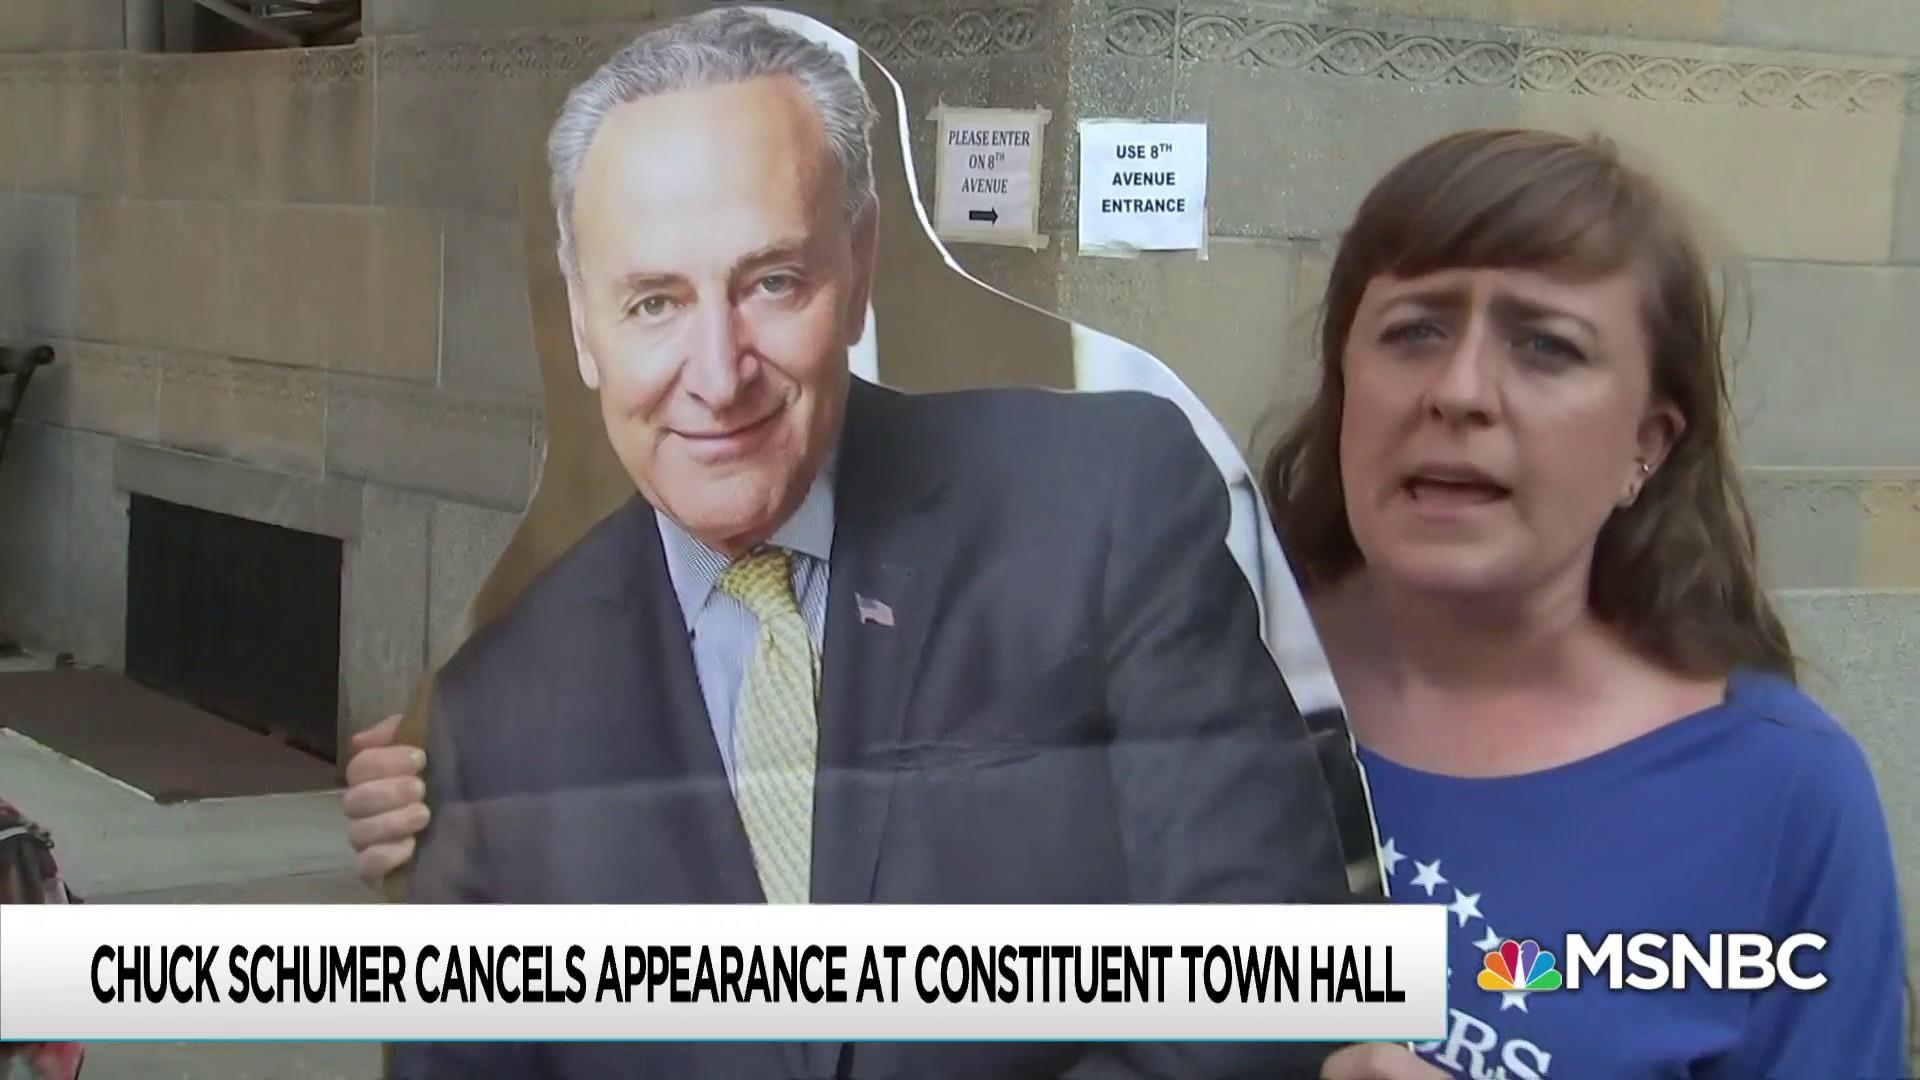 Schumer misses town hall, fired-up constituents hold it anyway